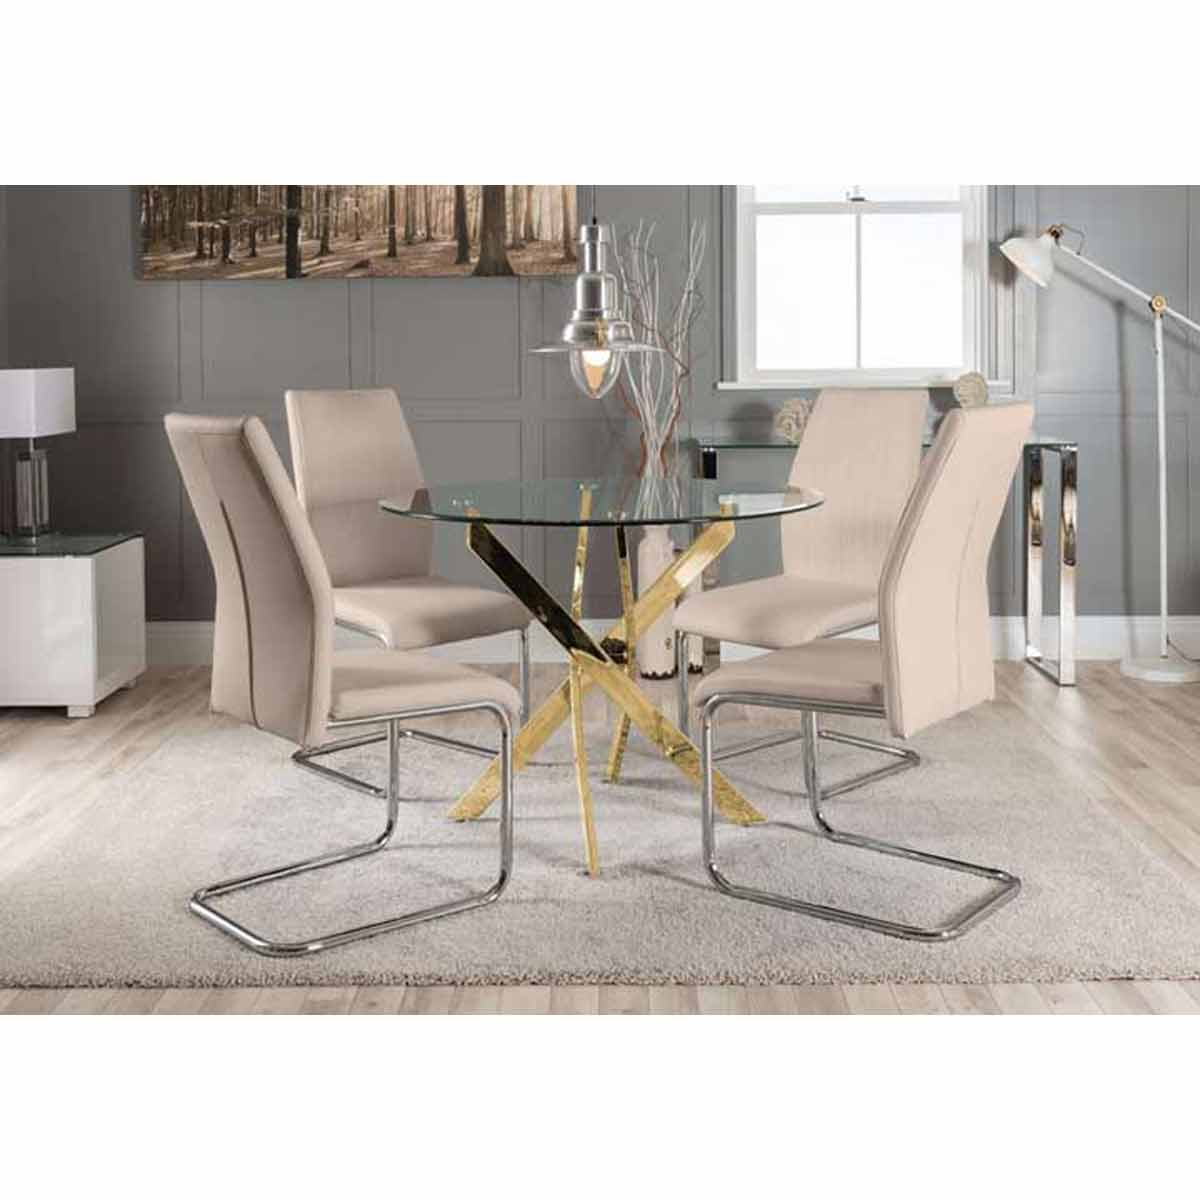 Furniture Box Novara Gold Metal Round Glass Dining Table And 4 Cappuccino Grey Lorenzo Dining Chairs